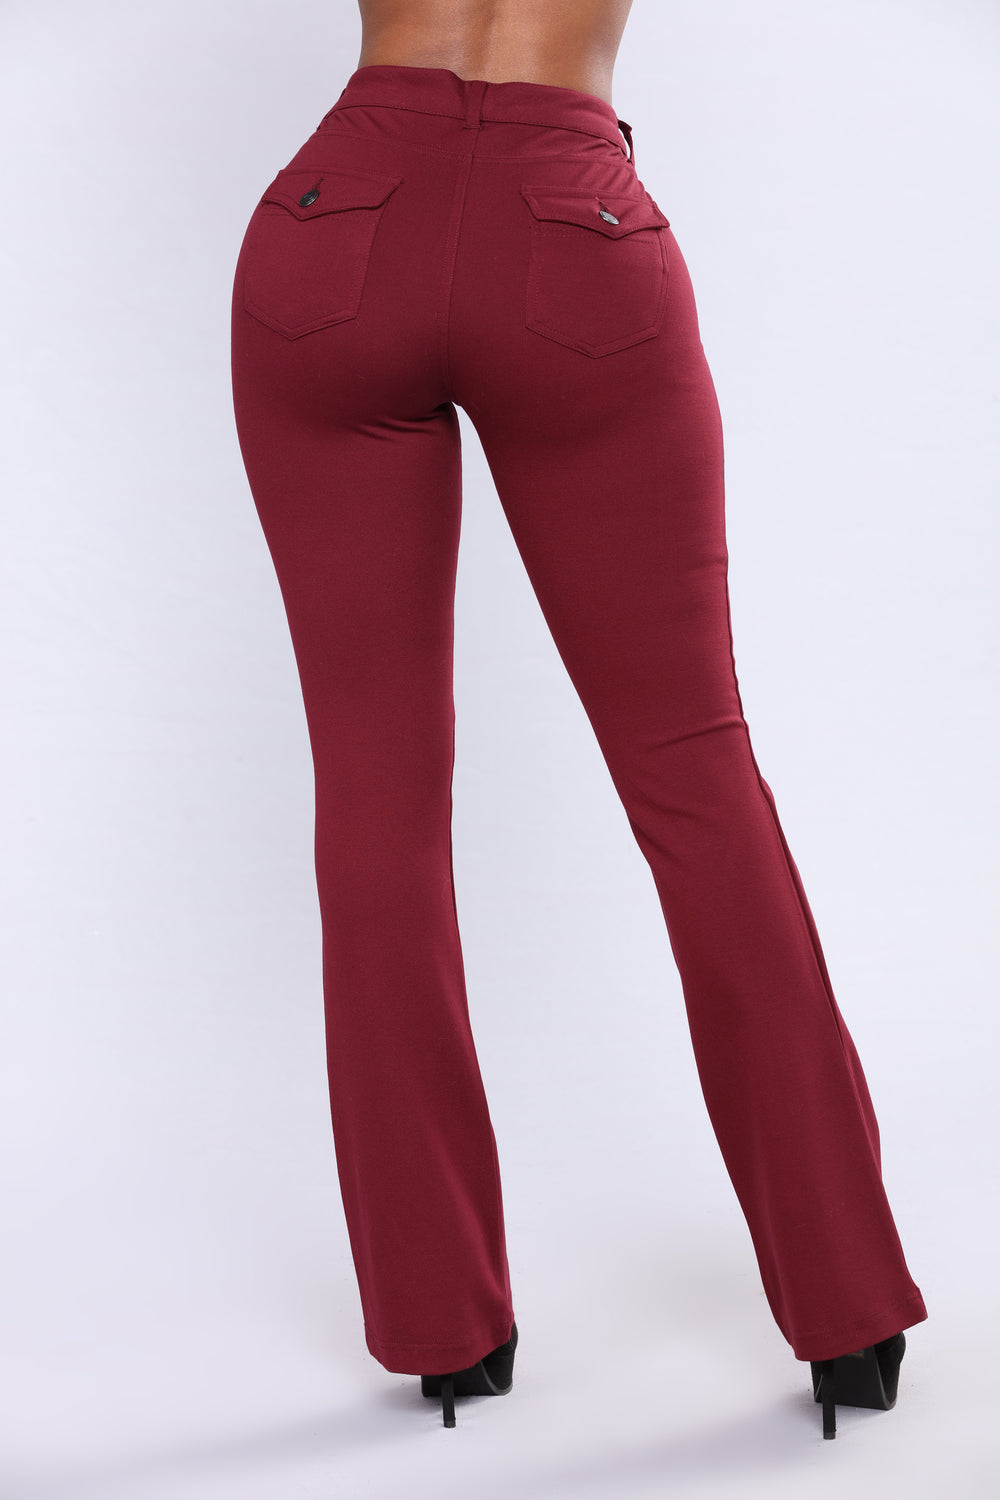 Bertha Ponte Pants - Wine